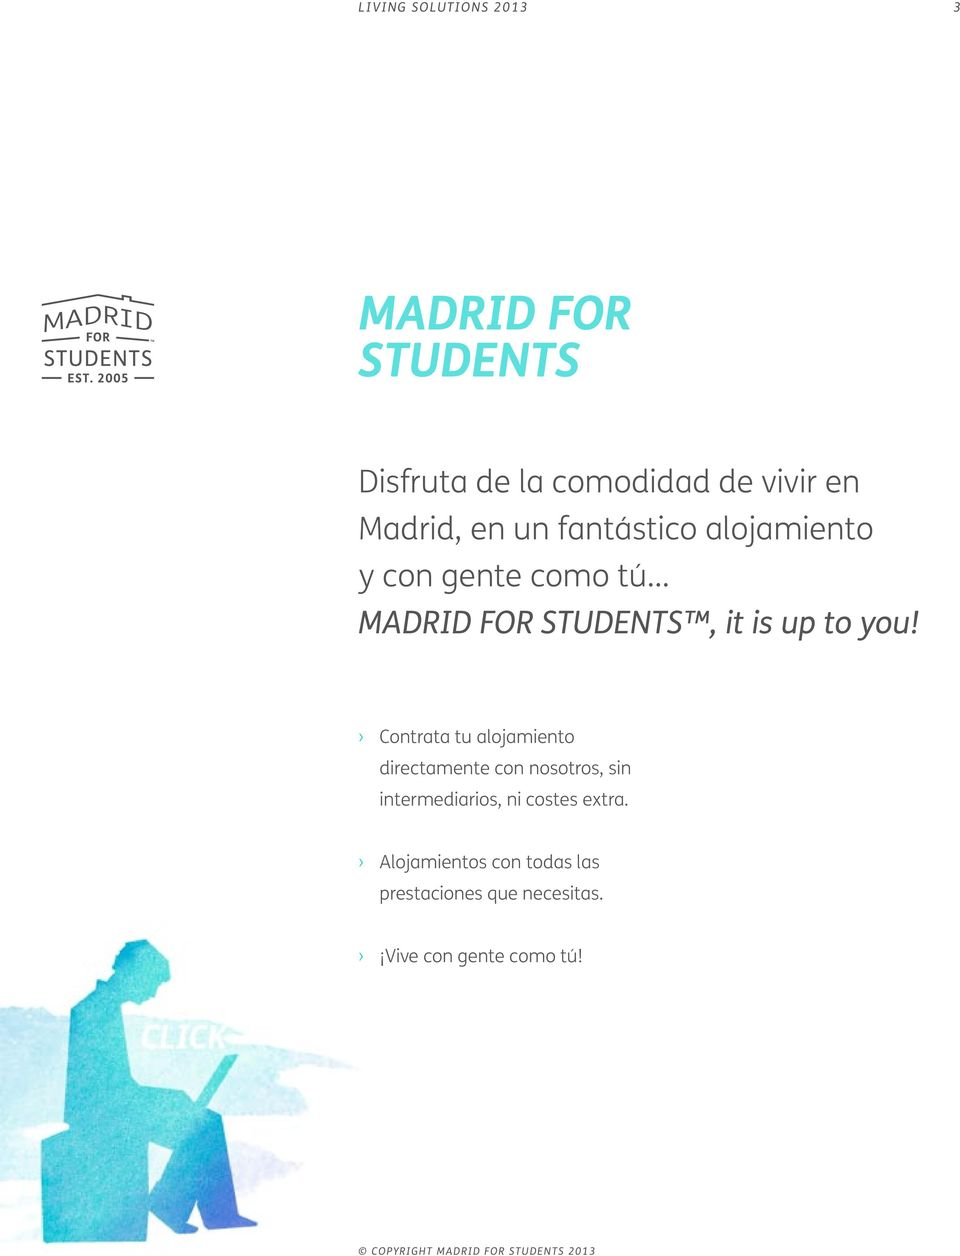 .. MADRID FOR STUDENTS, it is up to you!